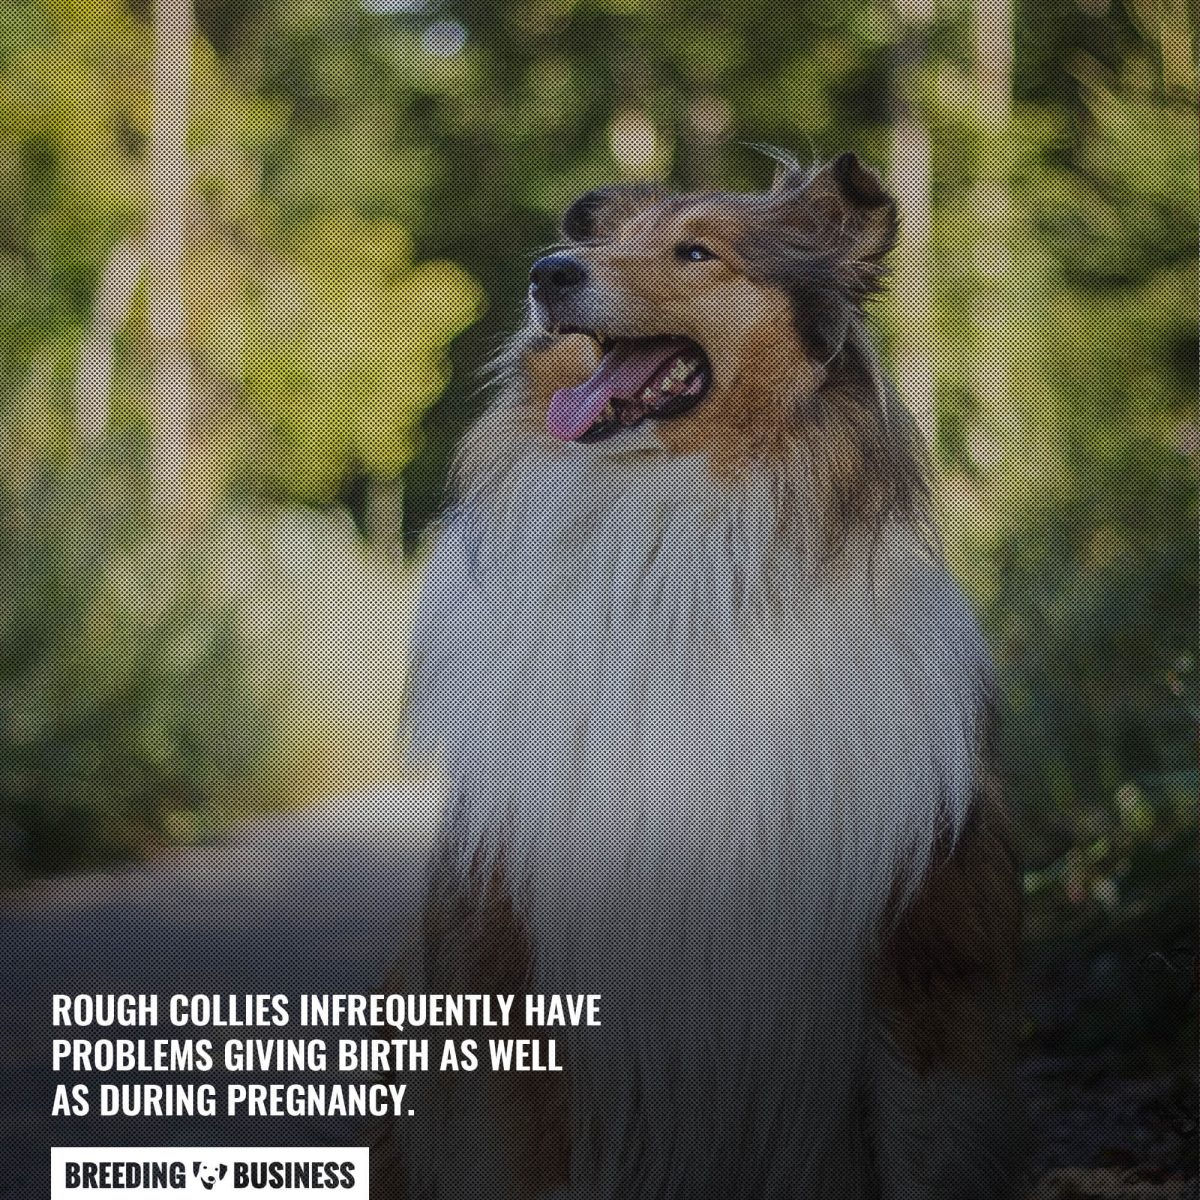 birthing issues in rough collies